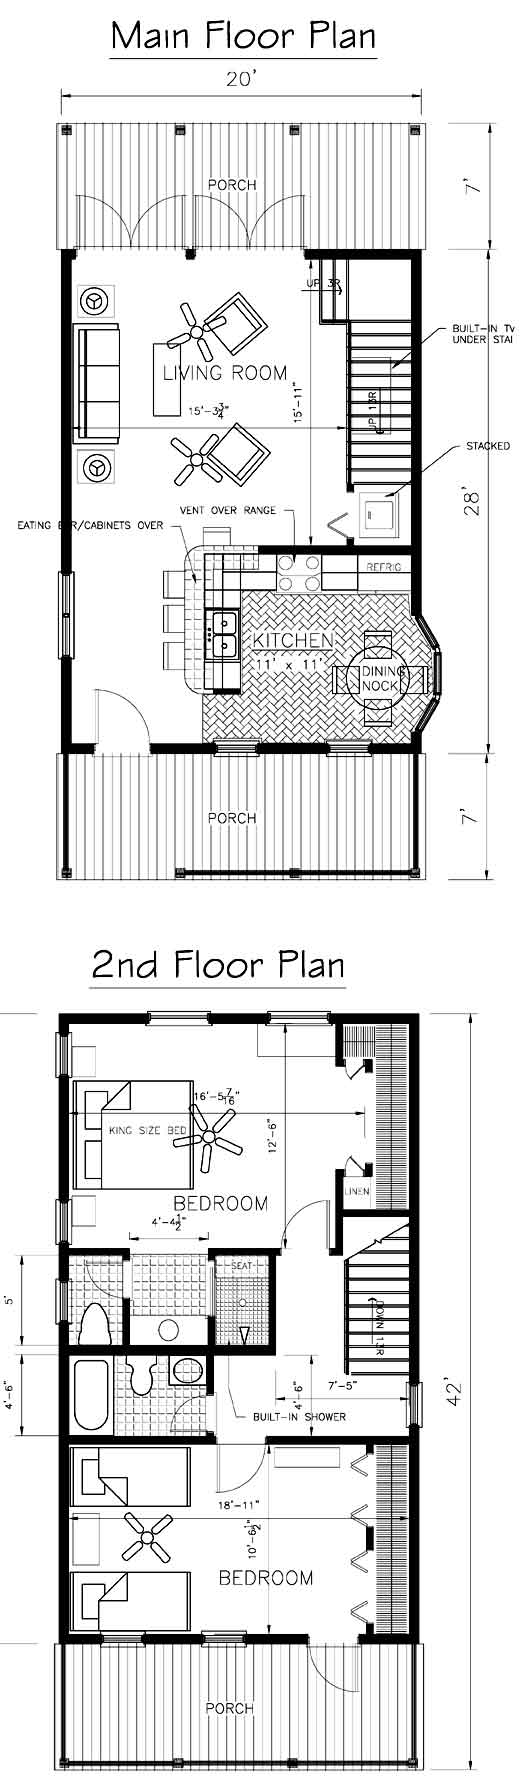 Stupendous 17 Best Images About Floor Plans Id Like To Be In On Pinterest Largest Home Design Picture Inspirations Pitcheantrous